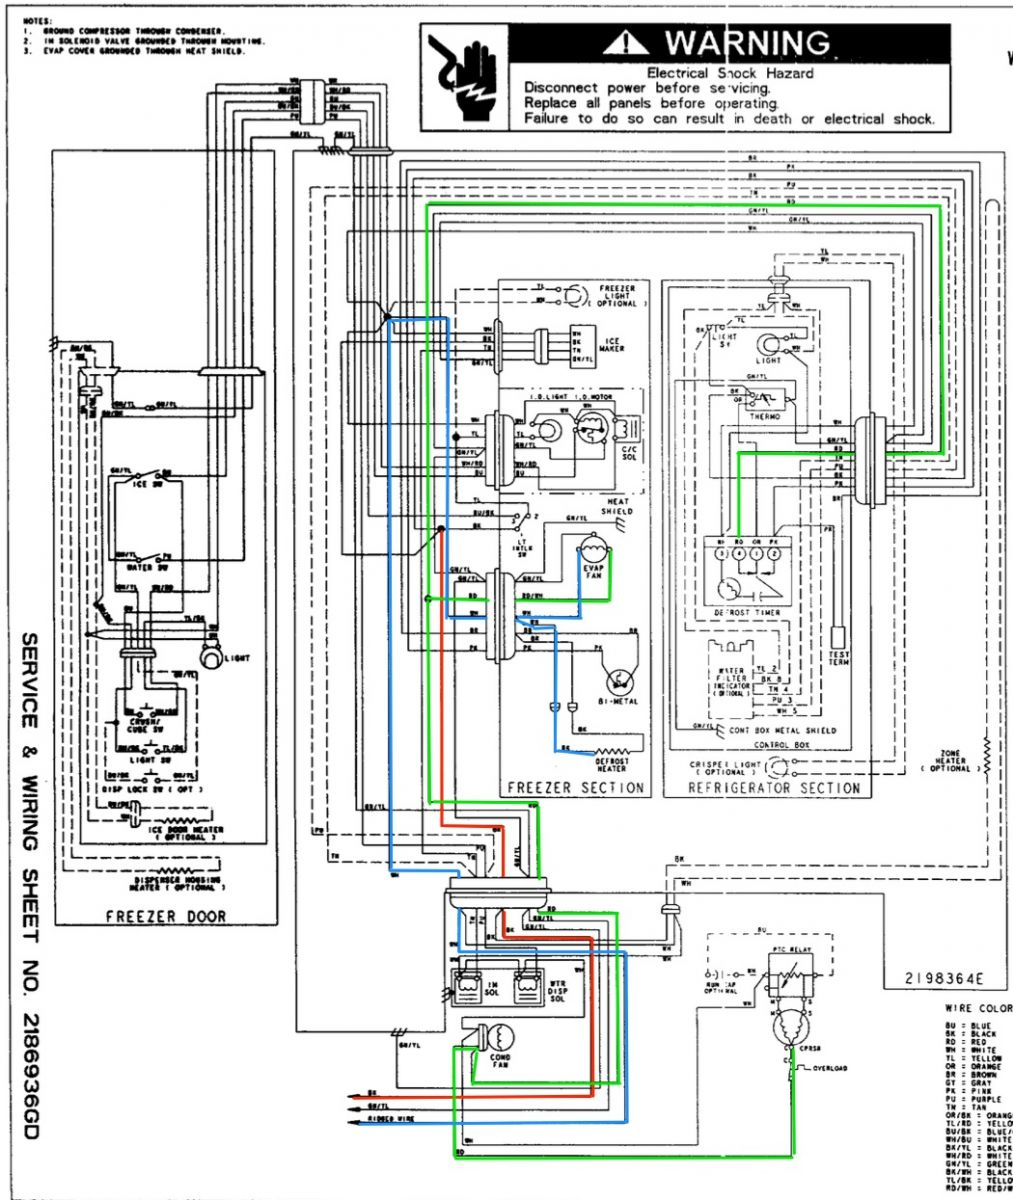 gallery_4_4_346879 whirlpool ed25rfxfw01 refrigerator wiring diagram the wiring diagram for refrigerator at readyjetset.co